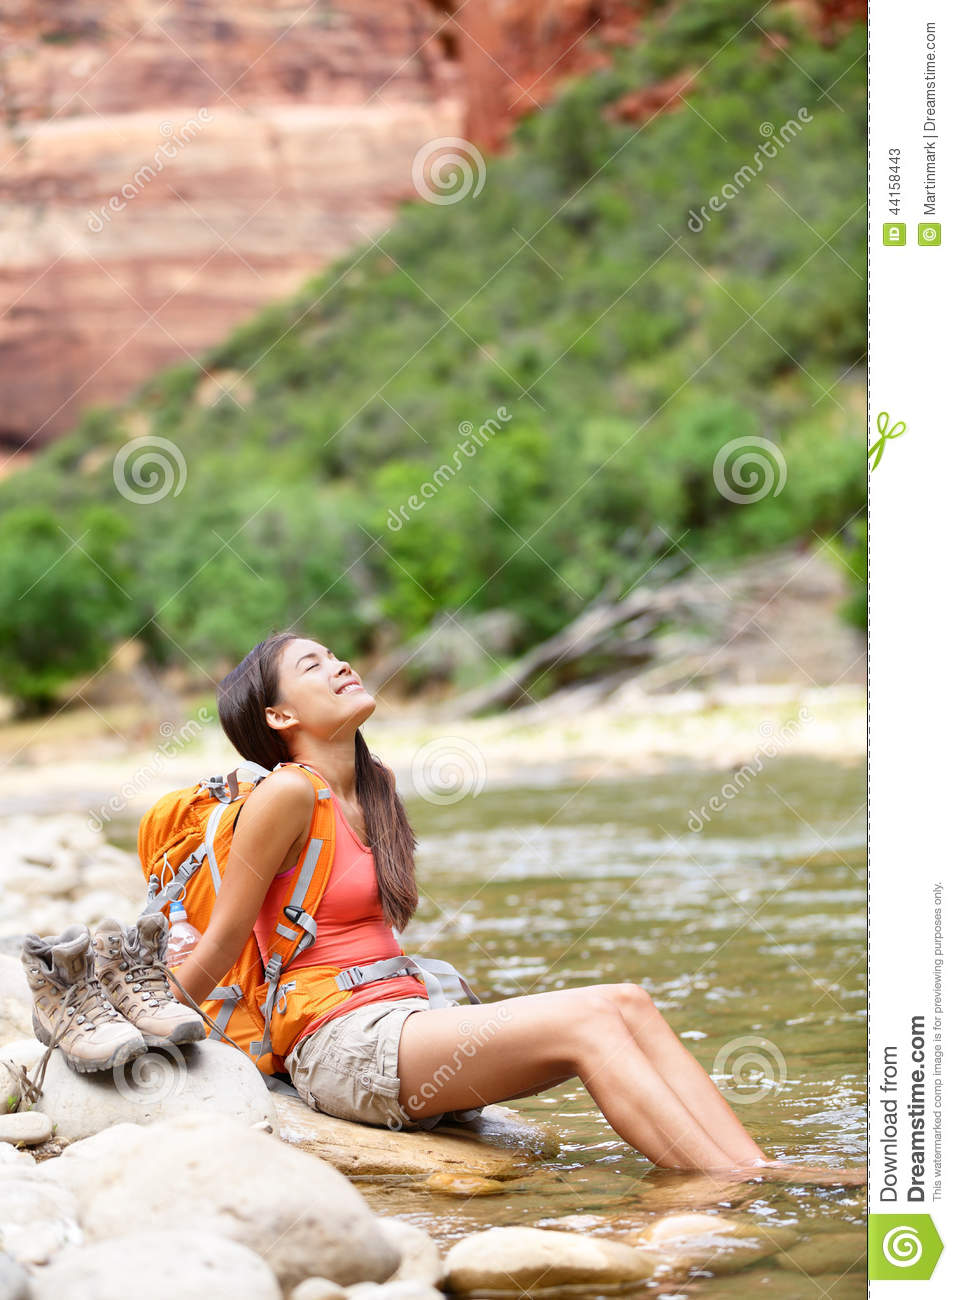 zion national park hiking map with Stock Photo Relaxing Hiker Woman Resting Feet River Hiking Happy Serene Relaxed Afterhiking Zion National Park Female Zion Canyon Image44158443 on Stock Photo Relaxing Hiker Woman Resting Feet River Hiking Happy Serene Relaxed Afterhiking Zion National Park Female Zion Canyon Image44158443 further 893066 likewise 7762516988 further K5A3 Zion National Park Washington County Utah likewise Snow Canyon State Park.